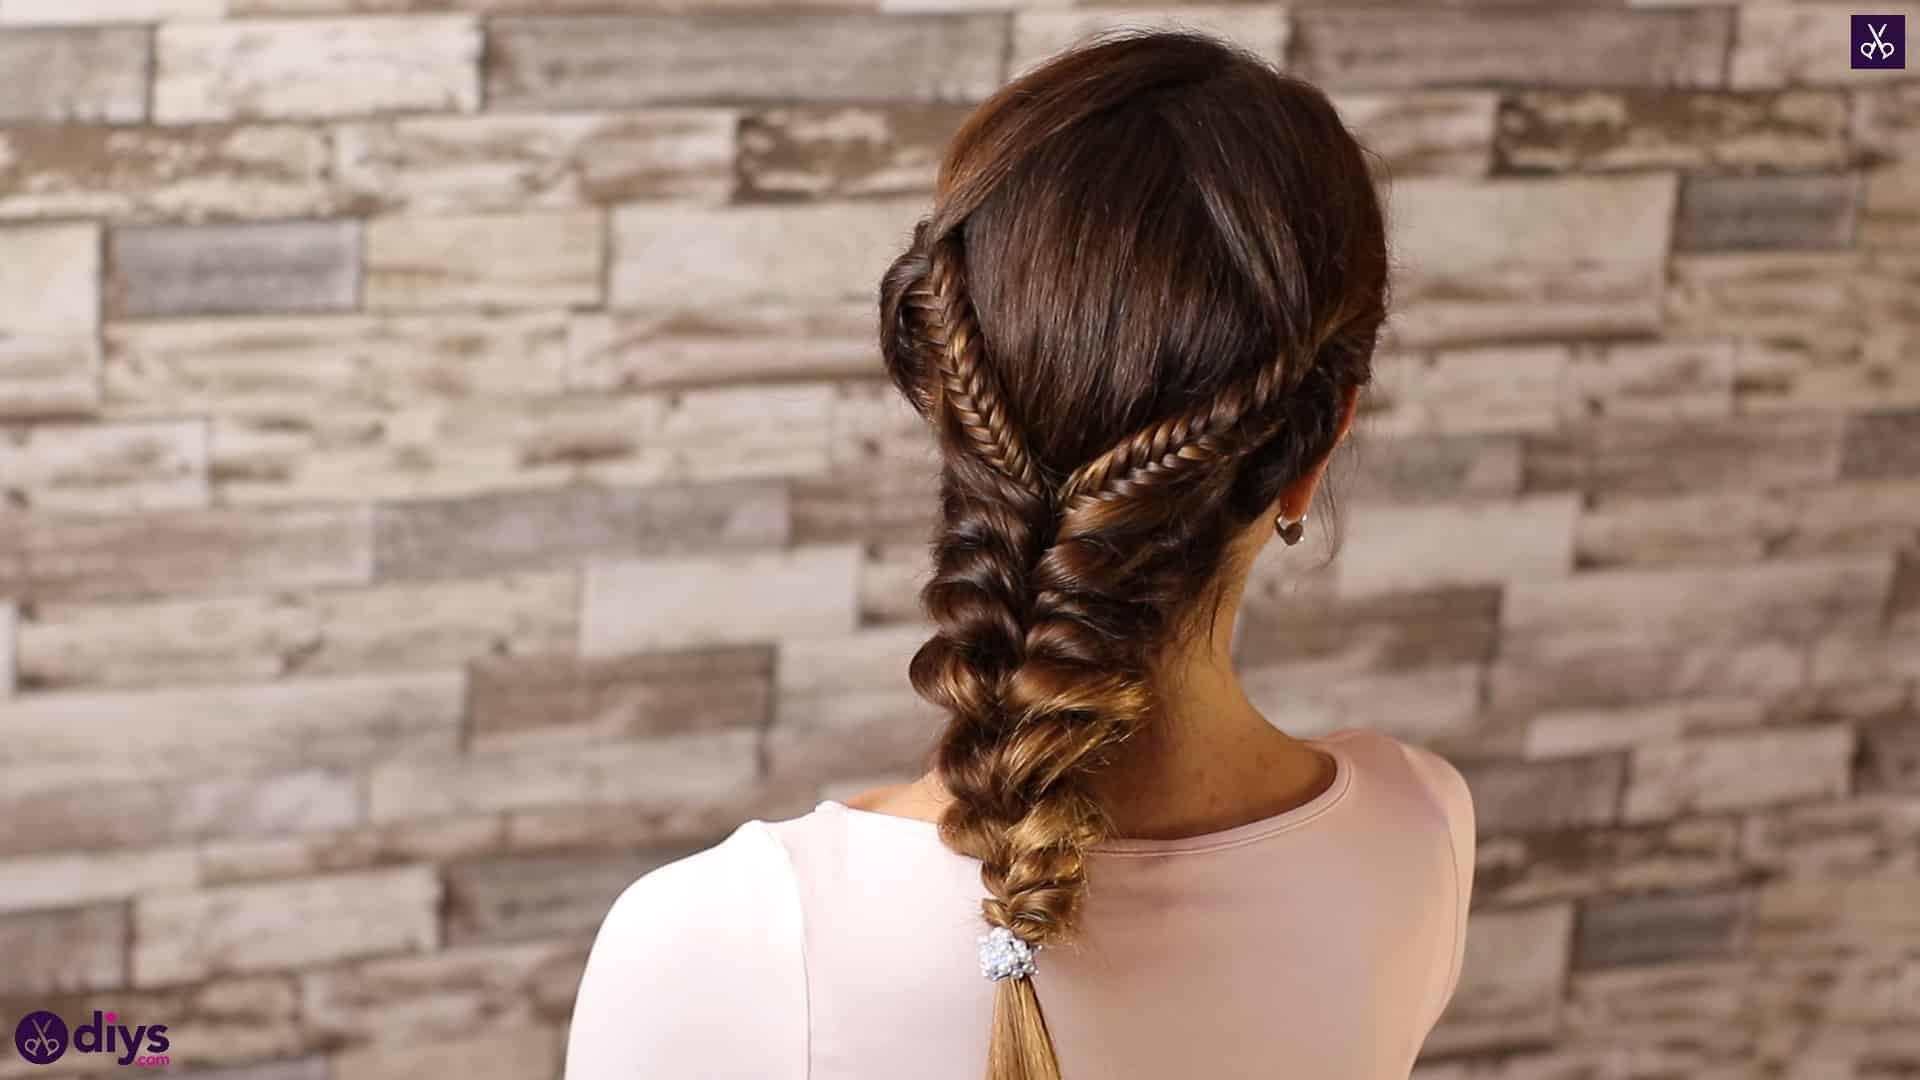 Romantic prom hairstyle tutorial step 5i